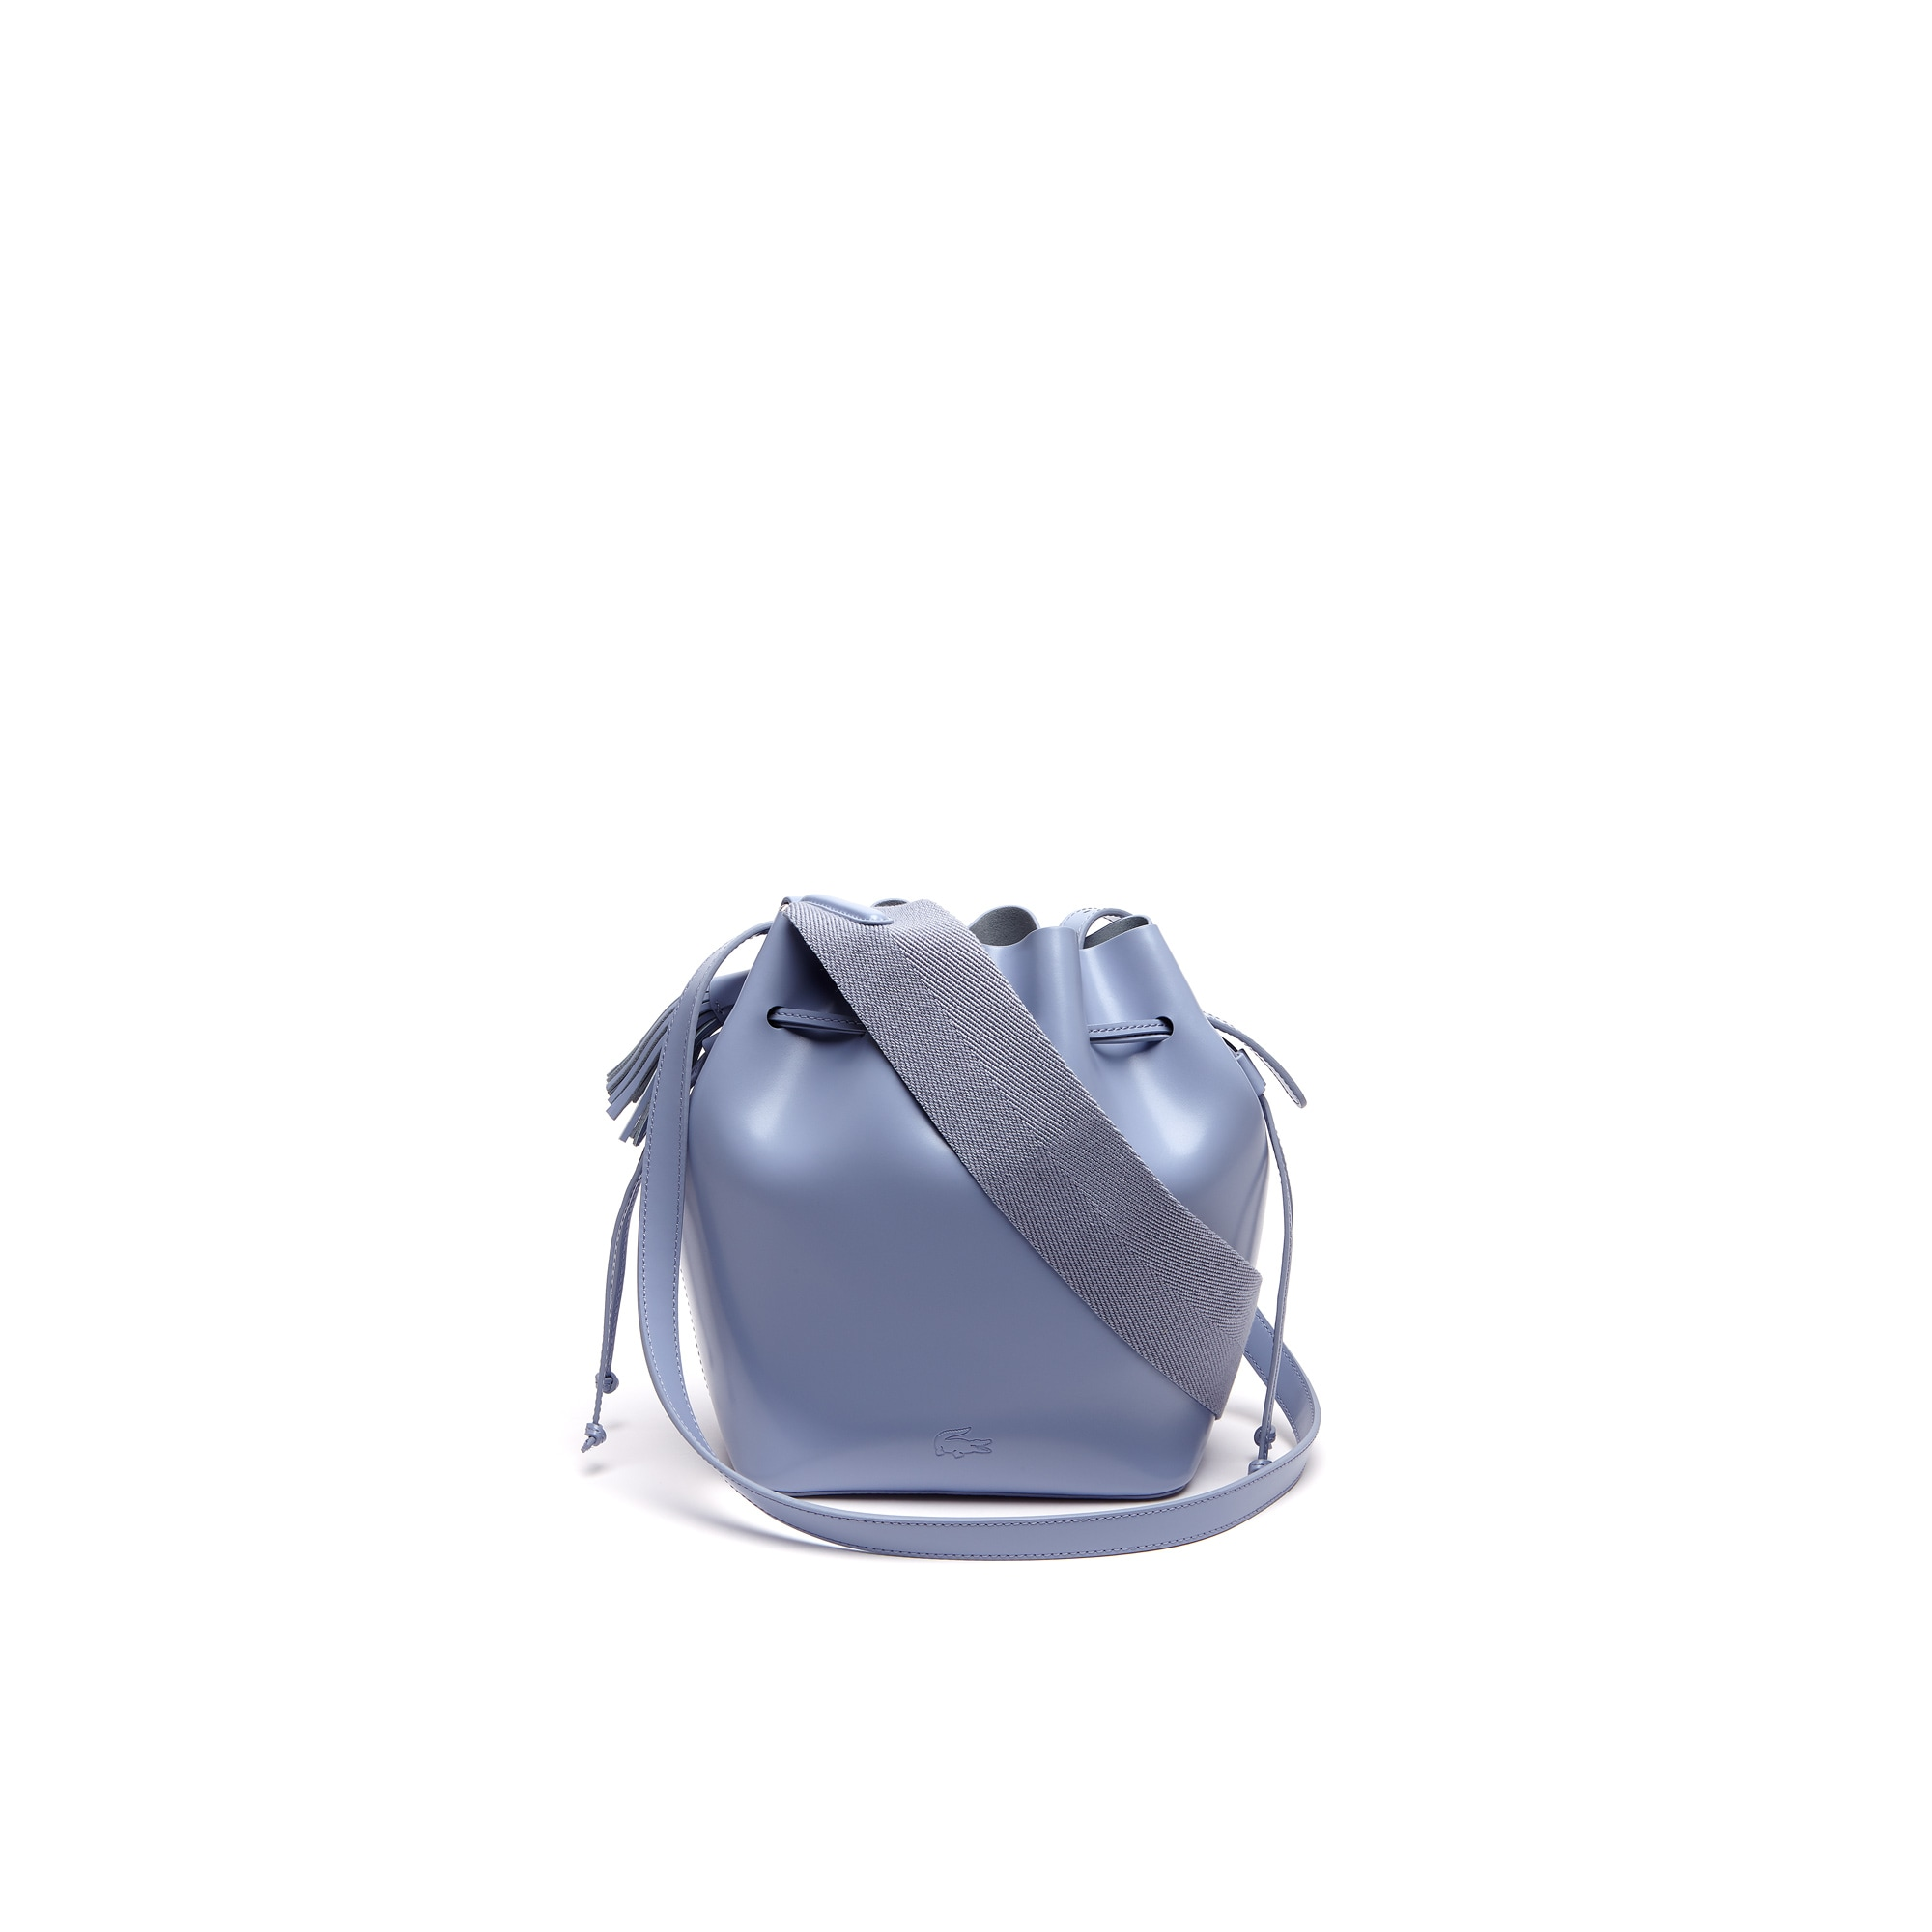 Women's Street Live Coated Leather Bucket Bag